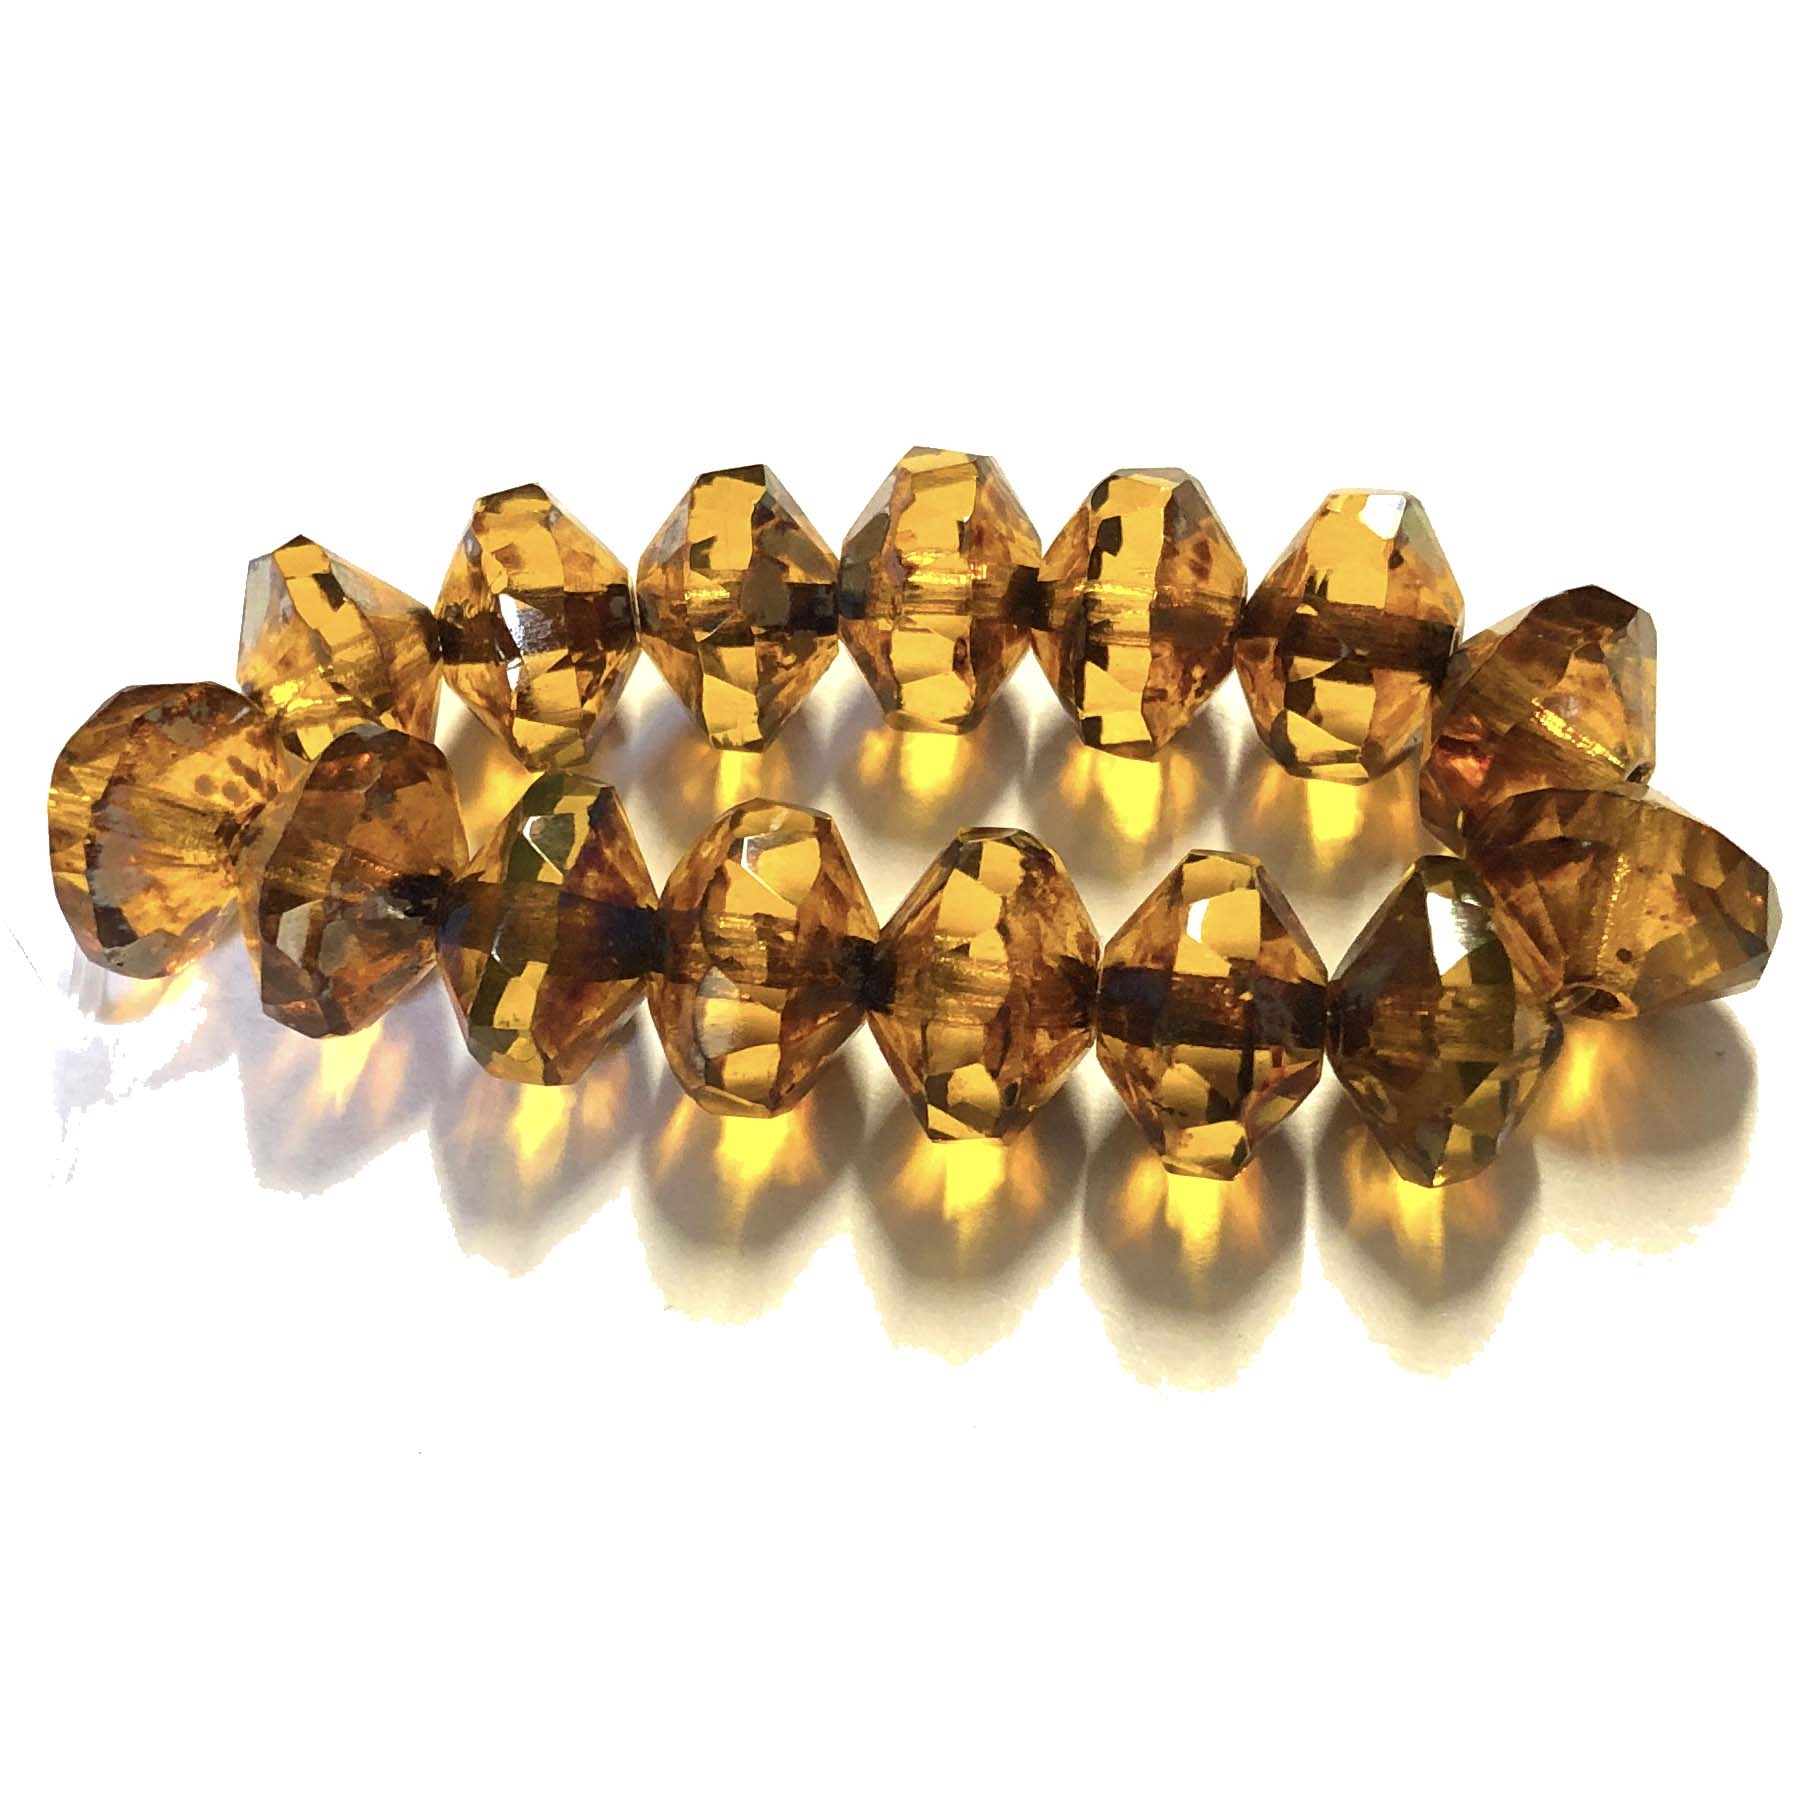 Saucer Amber Picasso finish beads, deep topaz, beads, Czech glass beads, saucer beads, fire polished, Czech, glass, Picasso, drilled, glass beads, topaz beads, US made, B'sue Boutiques, jewelry making, transparent amber, faceted beads, 7x11mm, 09342